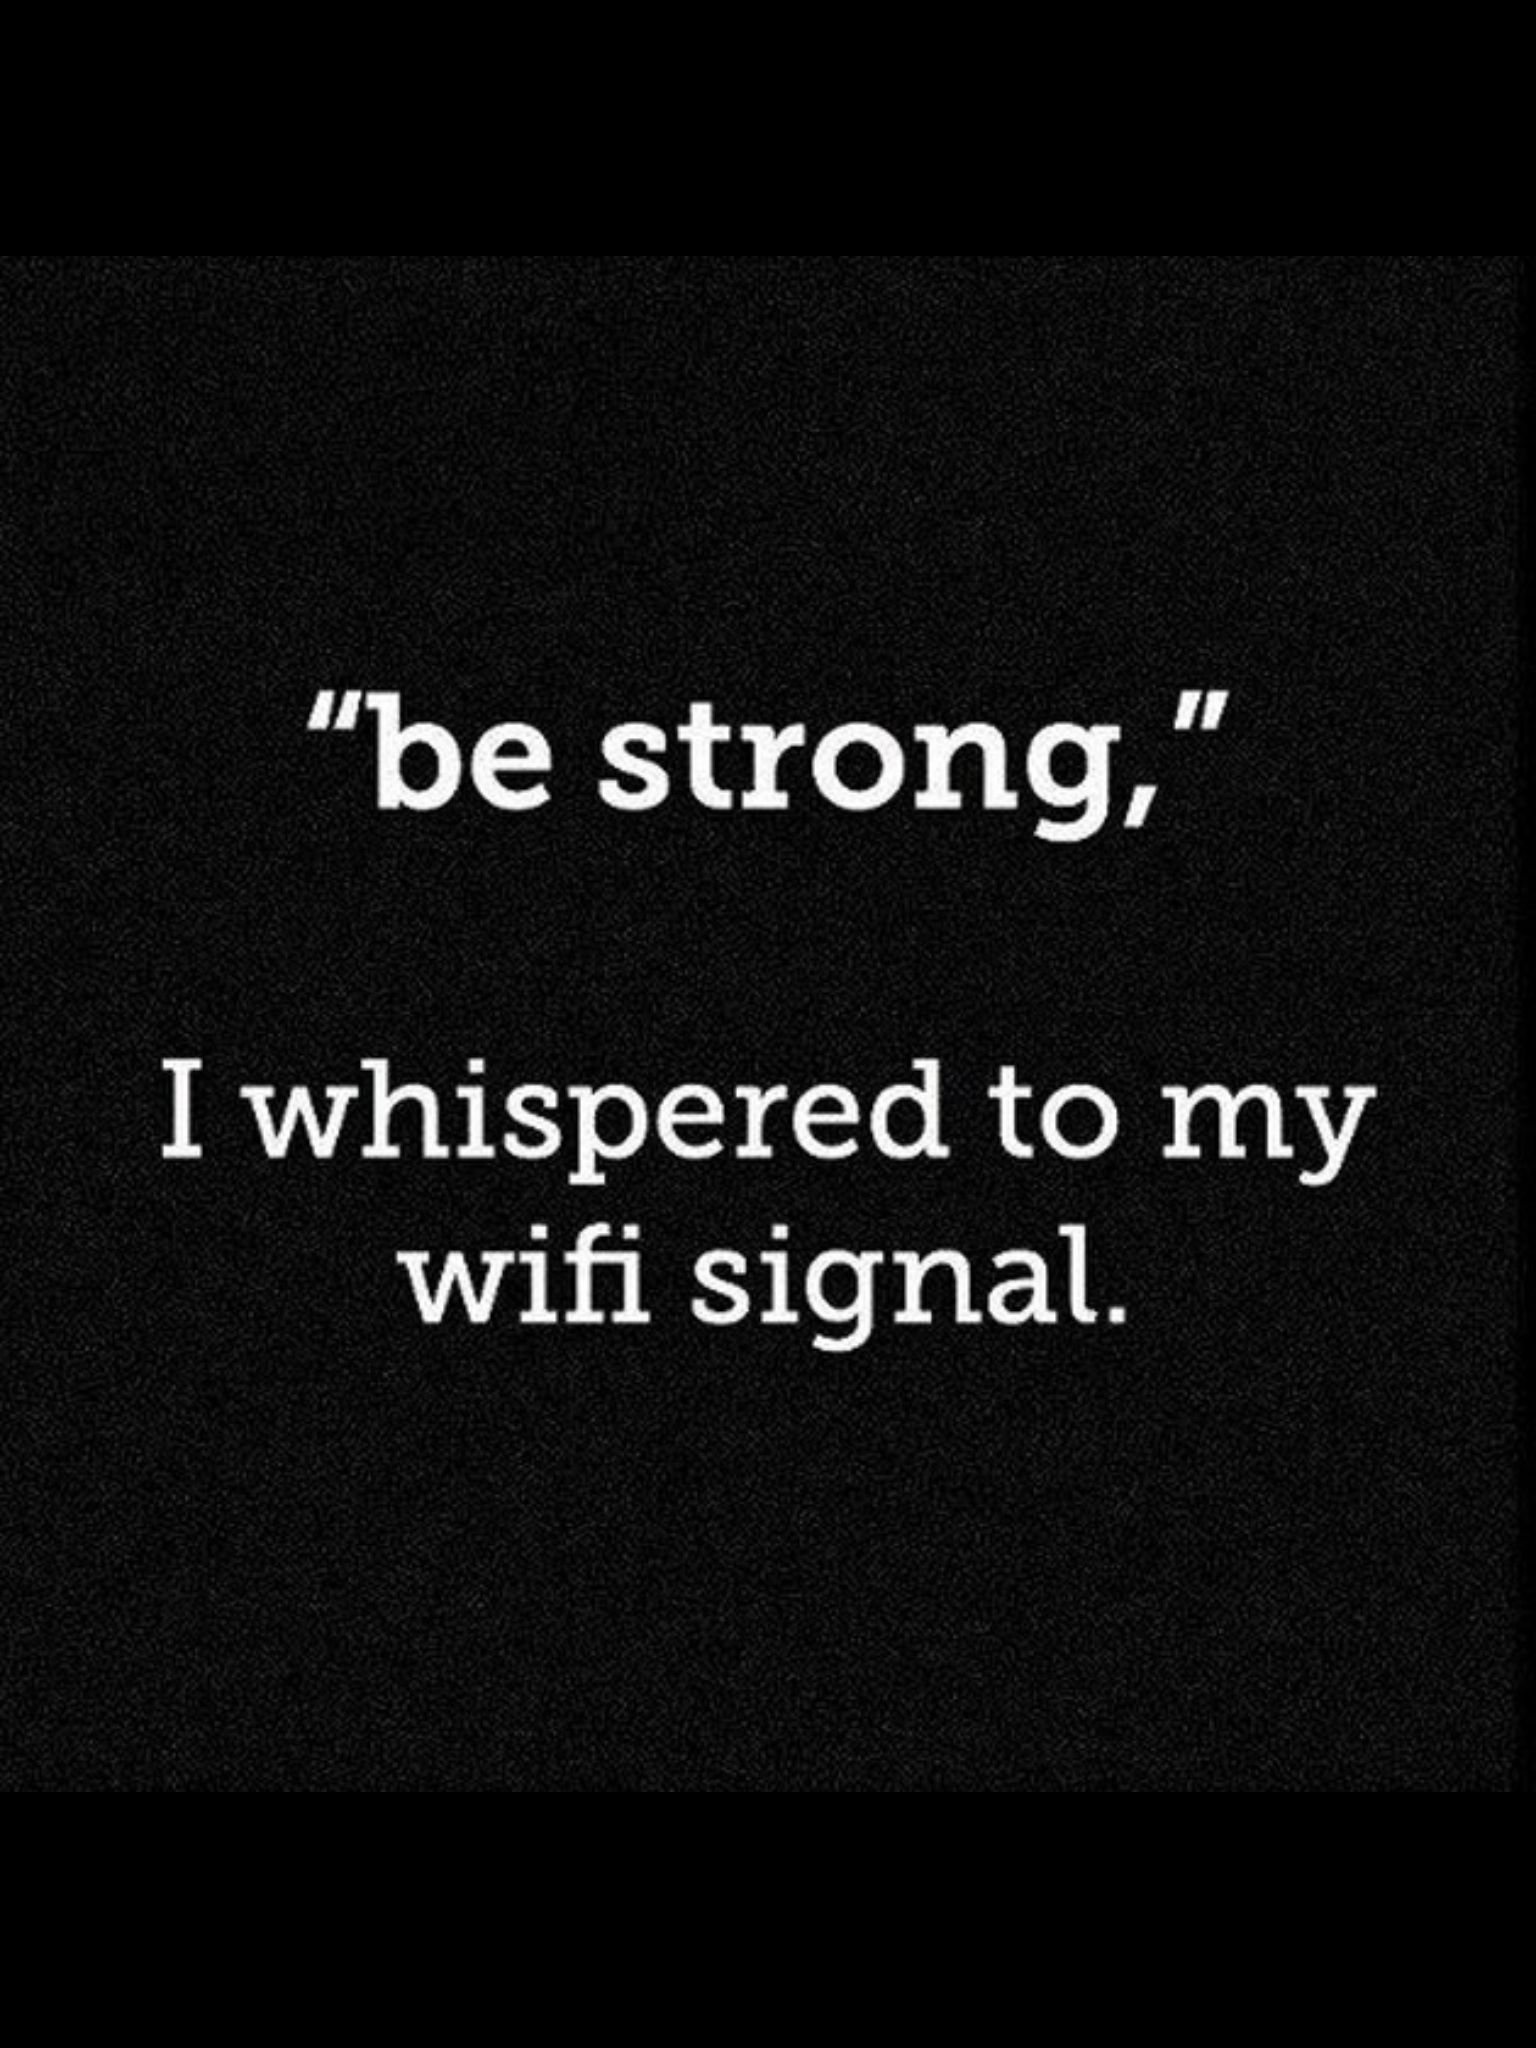 17 Best Images About Hahaha On Pinterest Wi Fi Ps And Early Bird